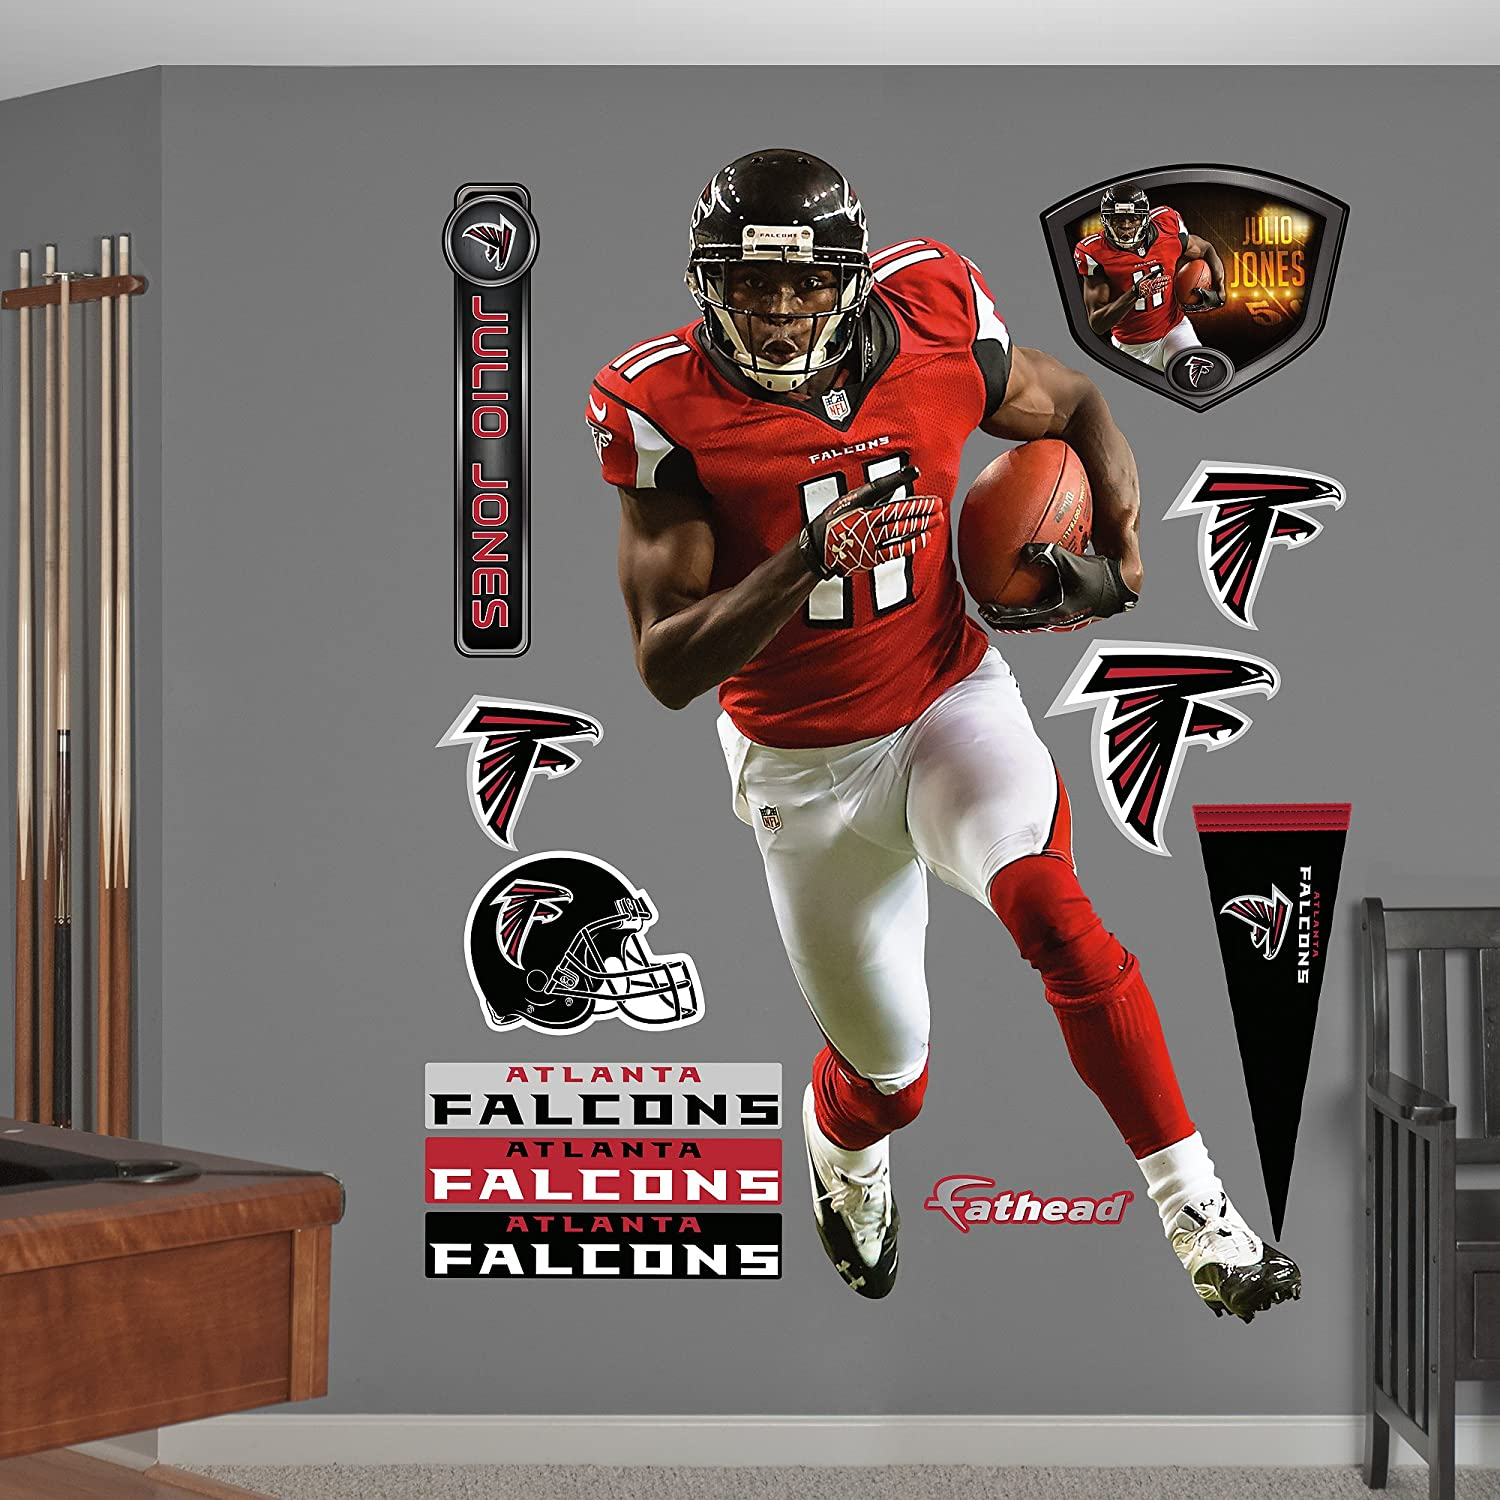 19a5a9bd Amazon.com : Fathead NFL Atlanta Falcons Julio Jones: Home - Life-Size  Officially Licensed NFL Removable Wall Decal : Sports Fan Wall Decor  Stickers ...